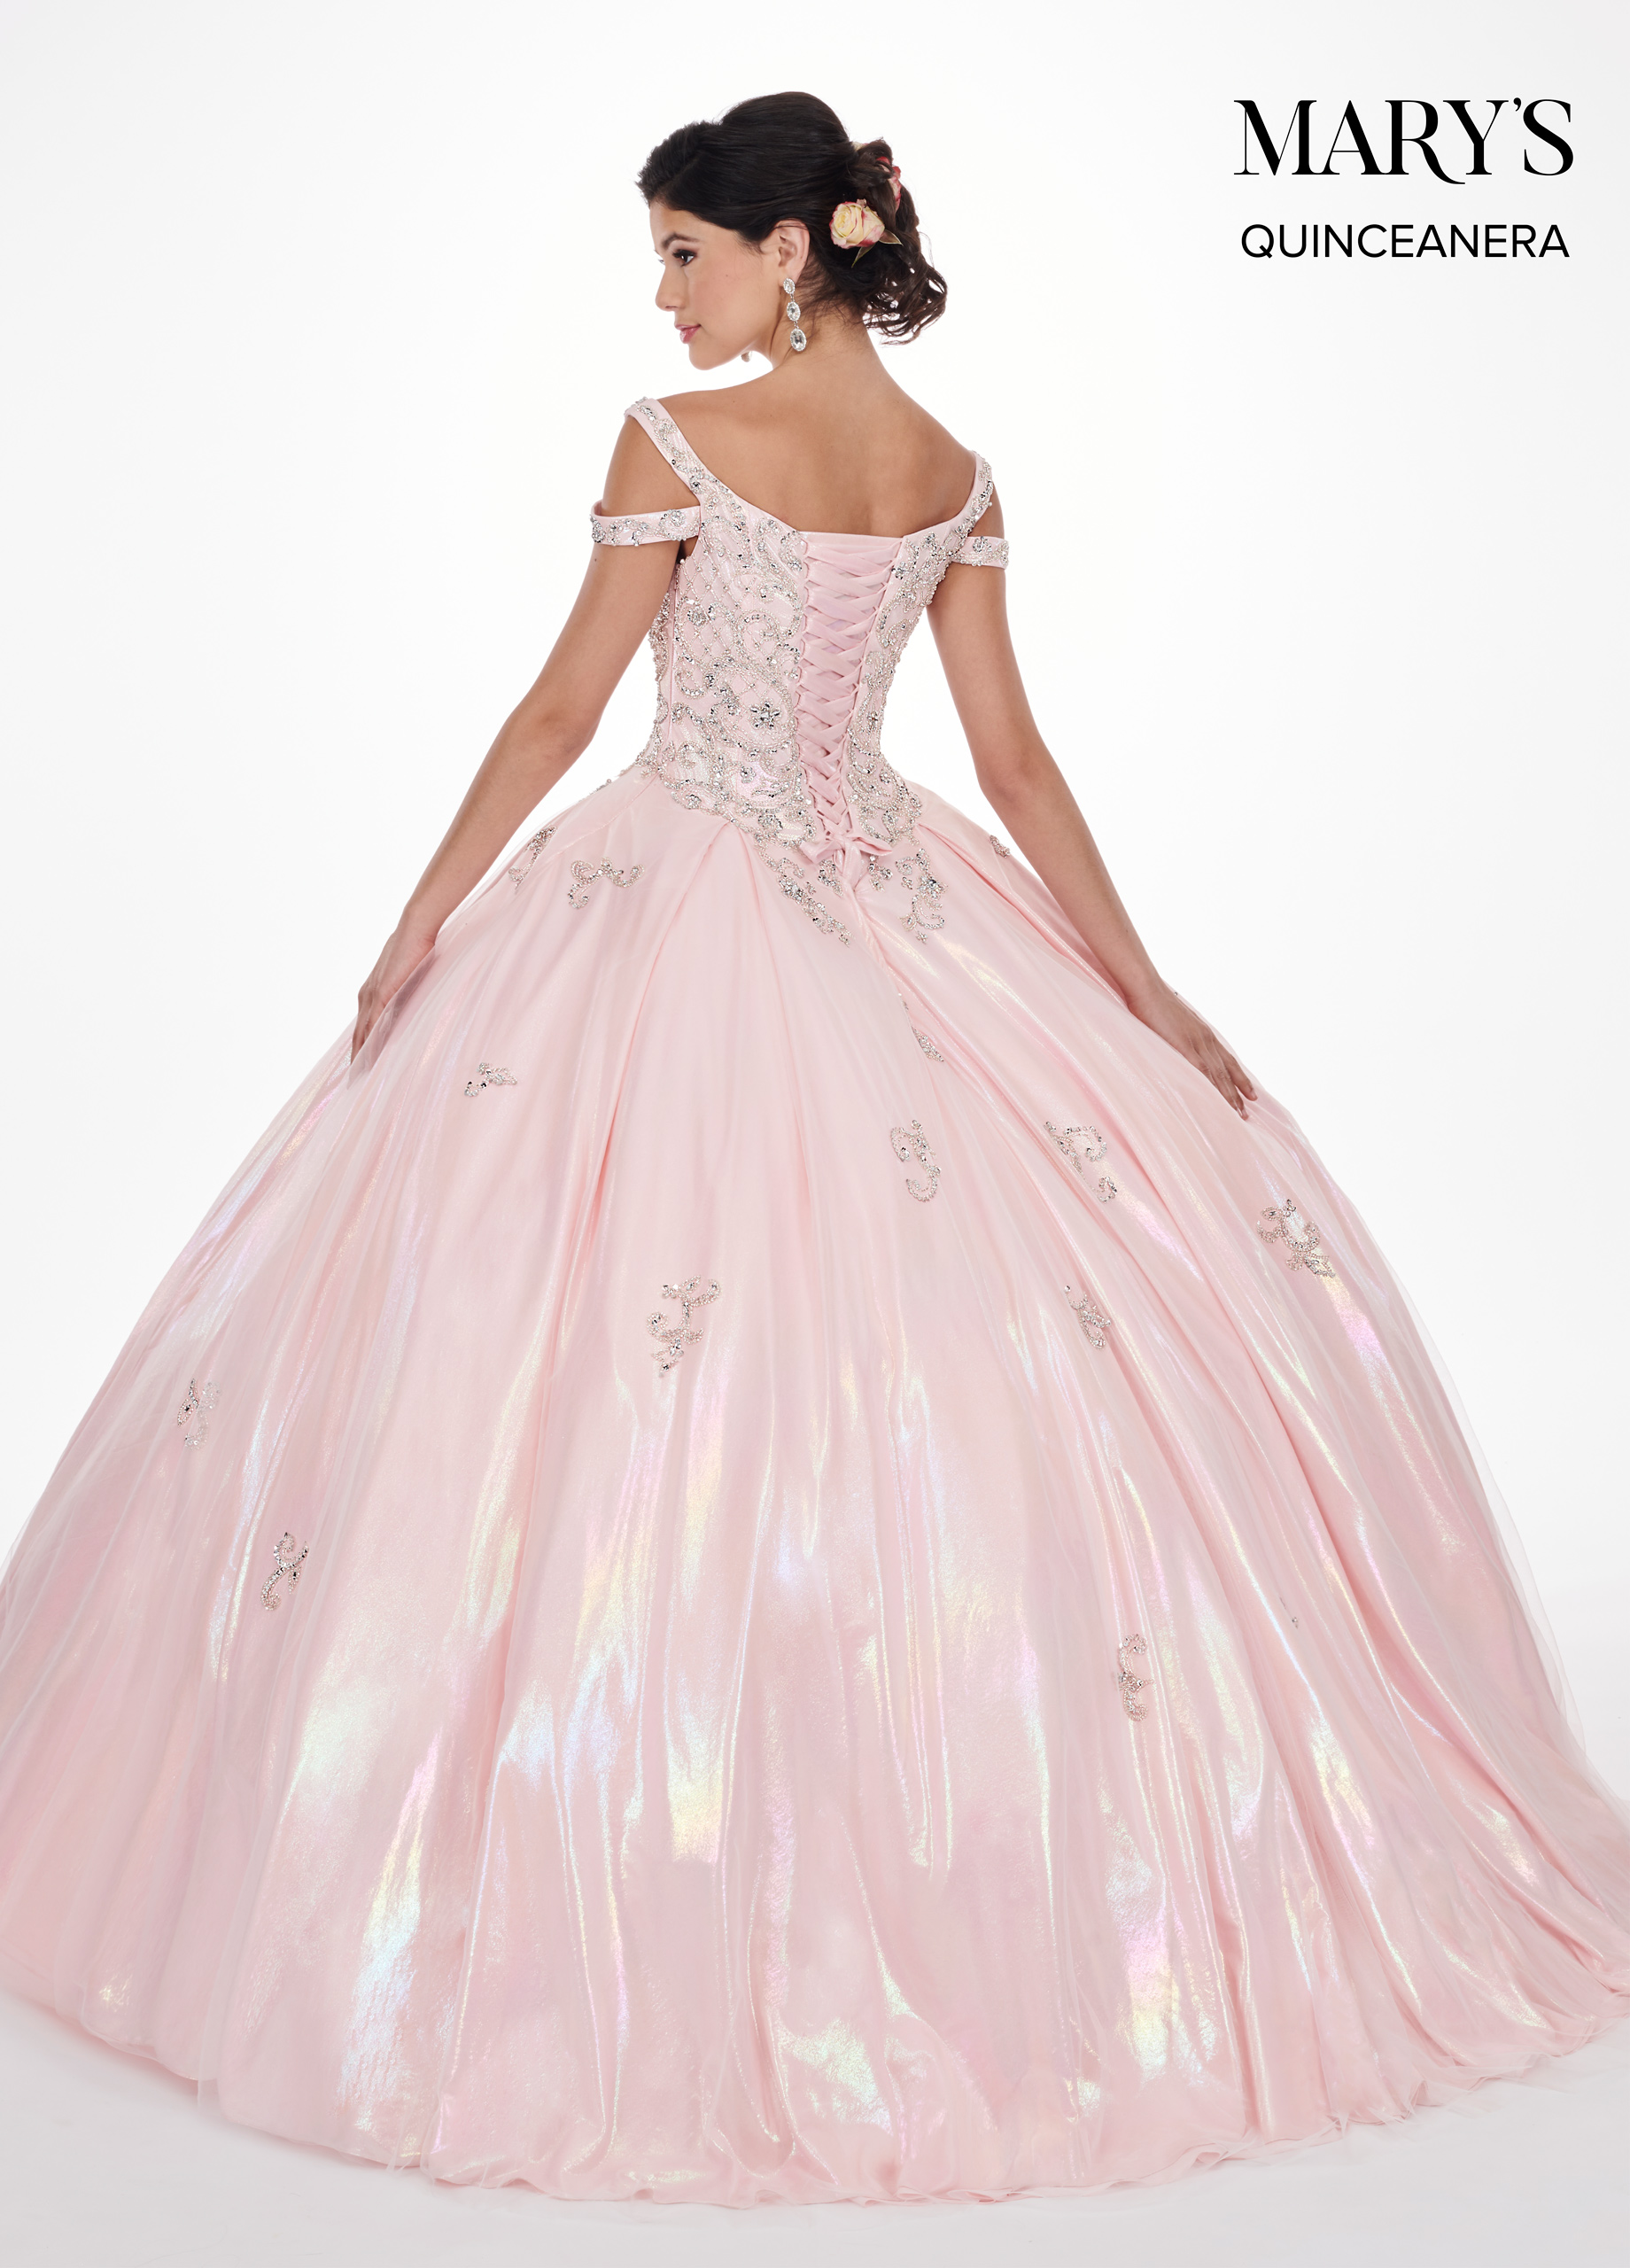 a31ccd4e837 ... Marys Quinceanera Dresses